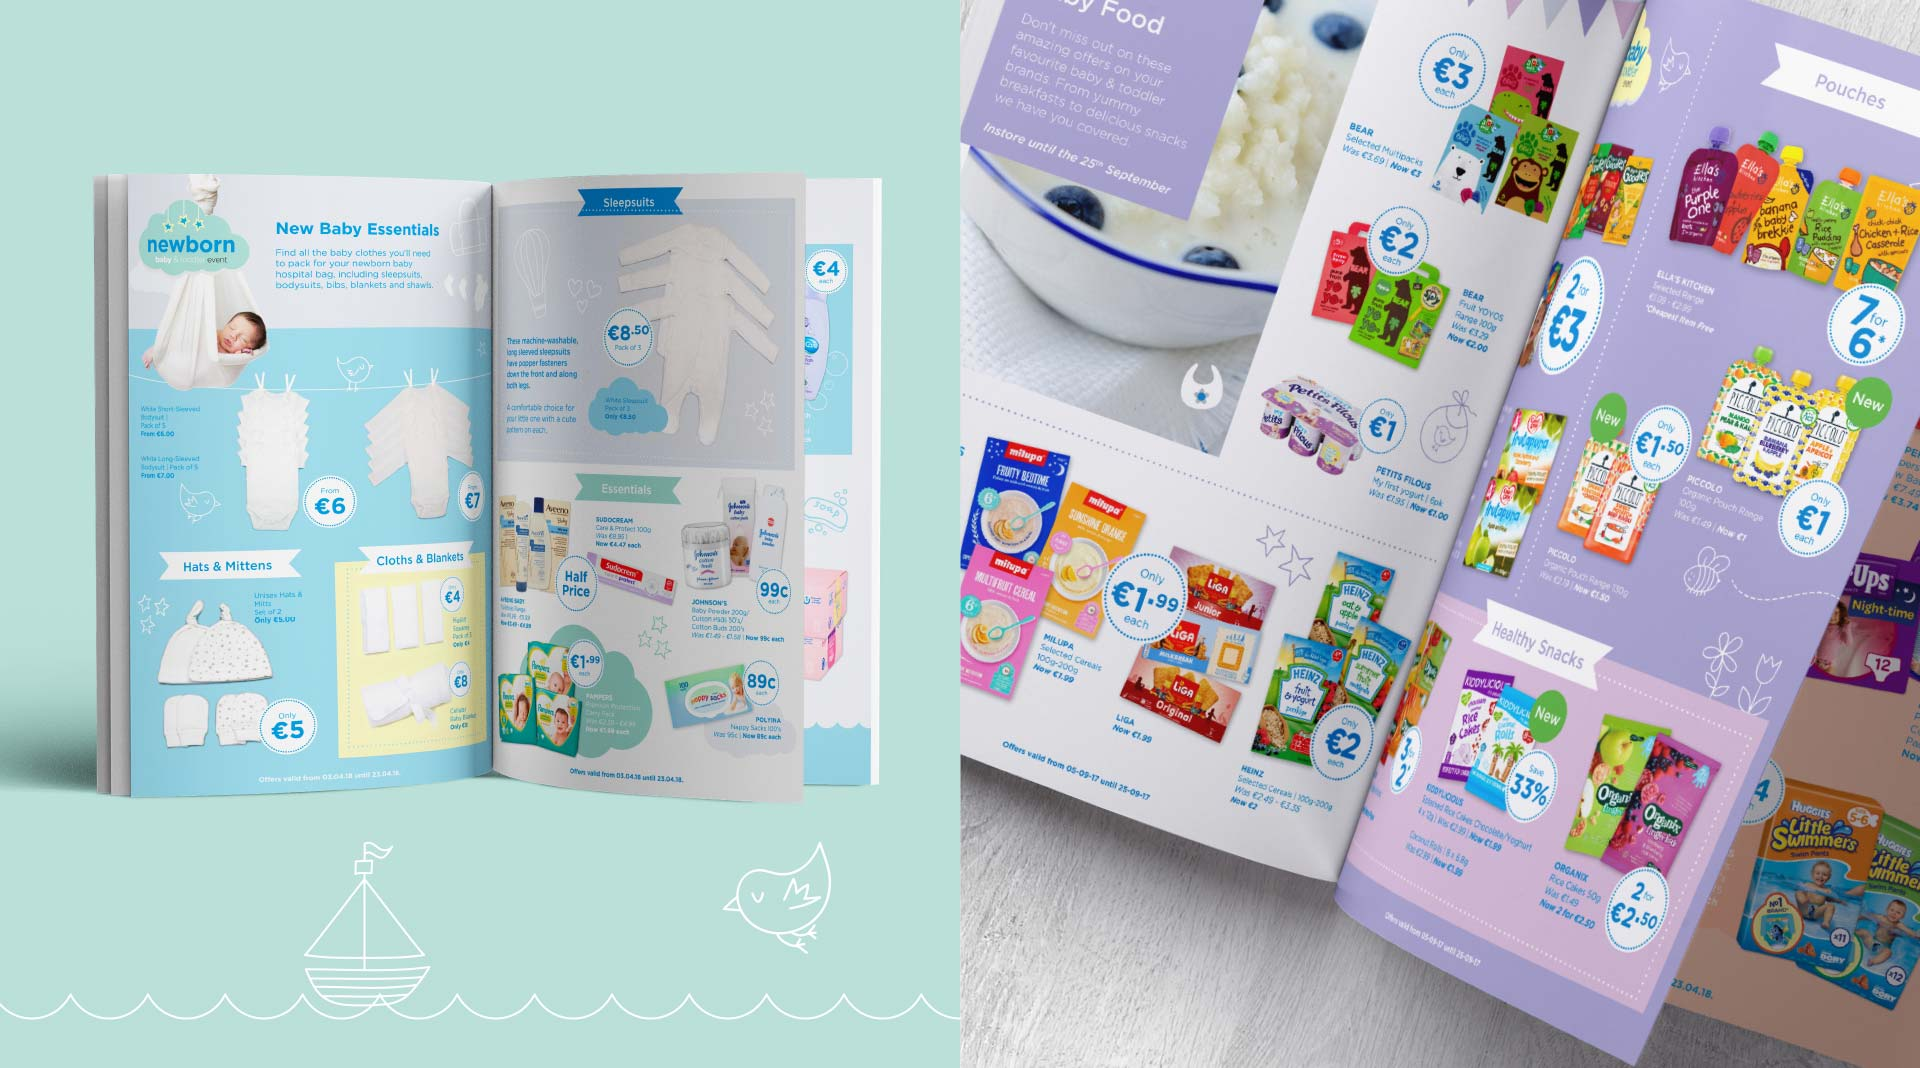 Baby event magazine layout and photography.